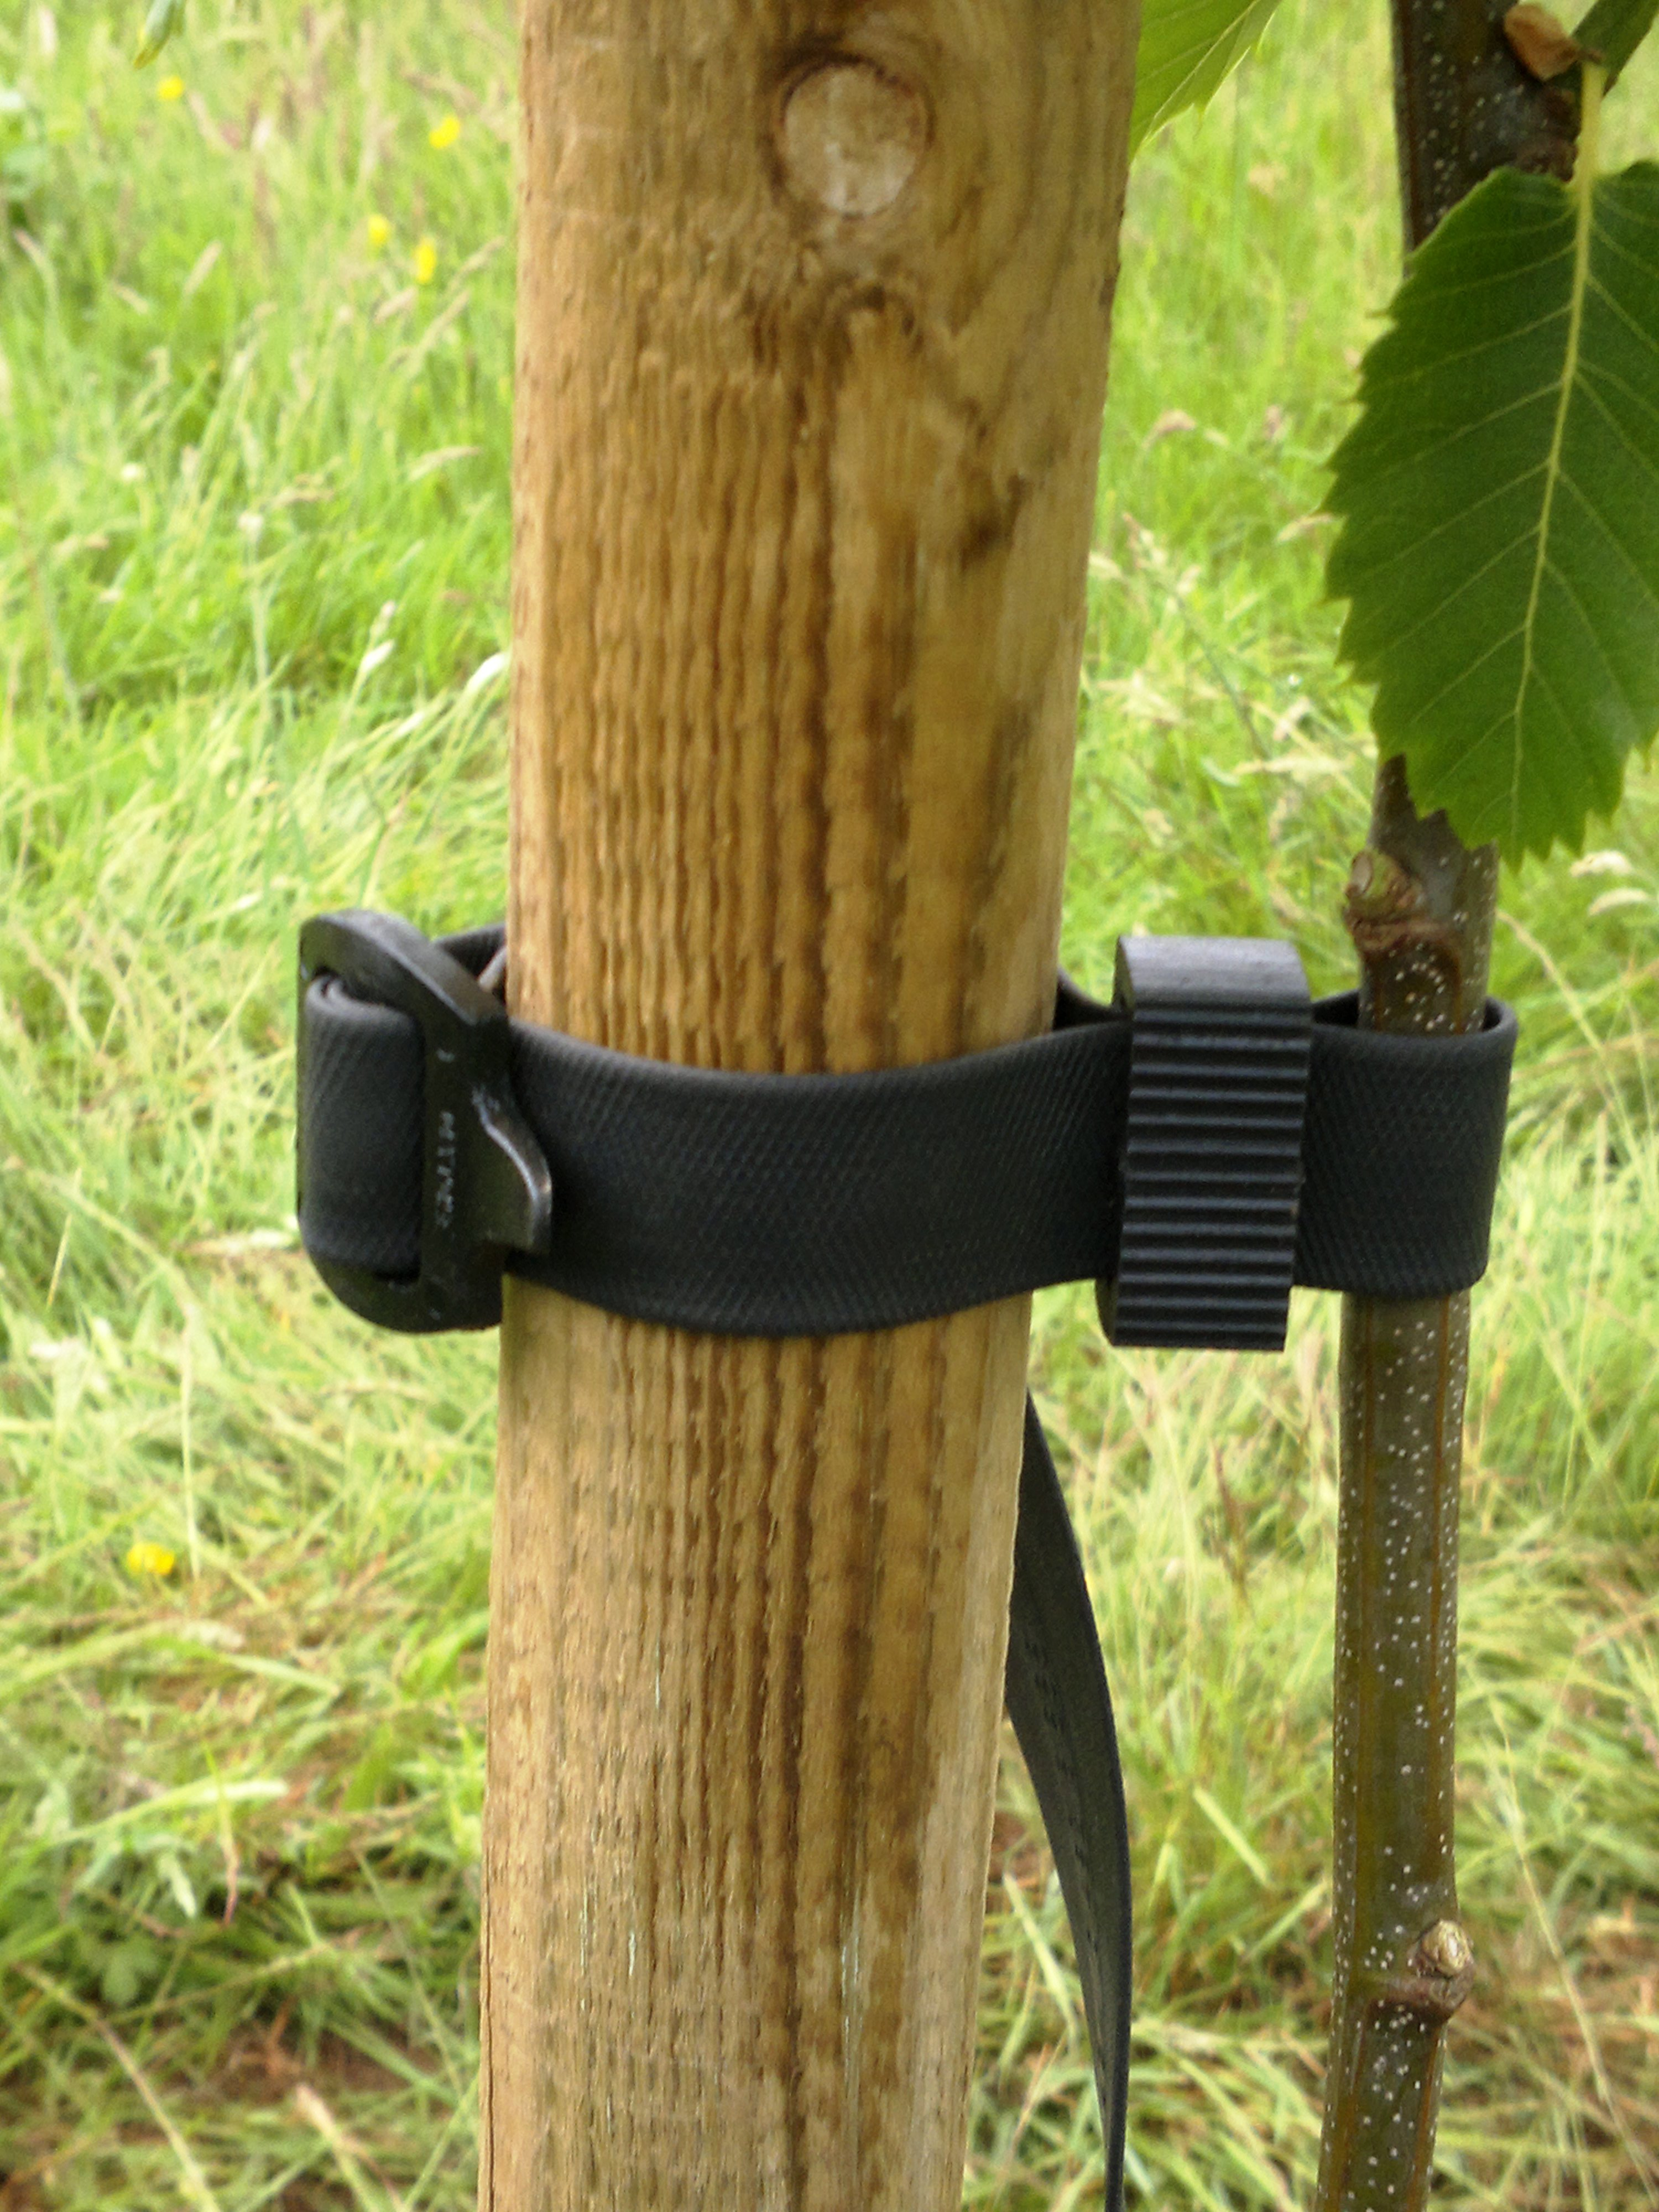 Tree buckle fastens securely the young tree to the stake